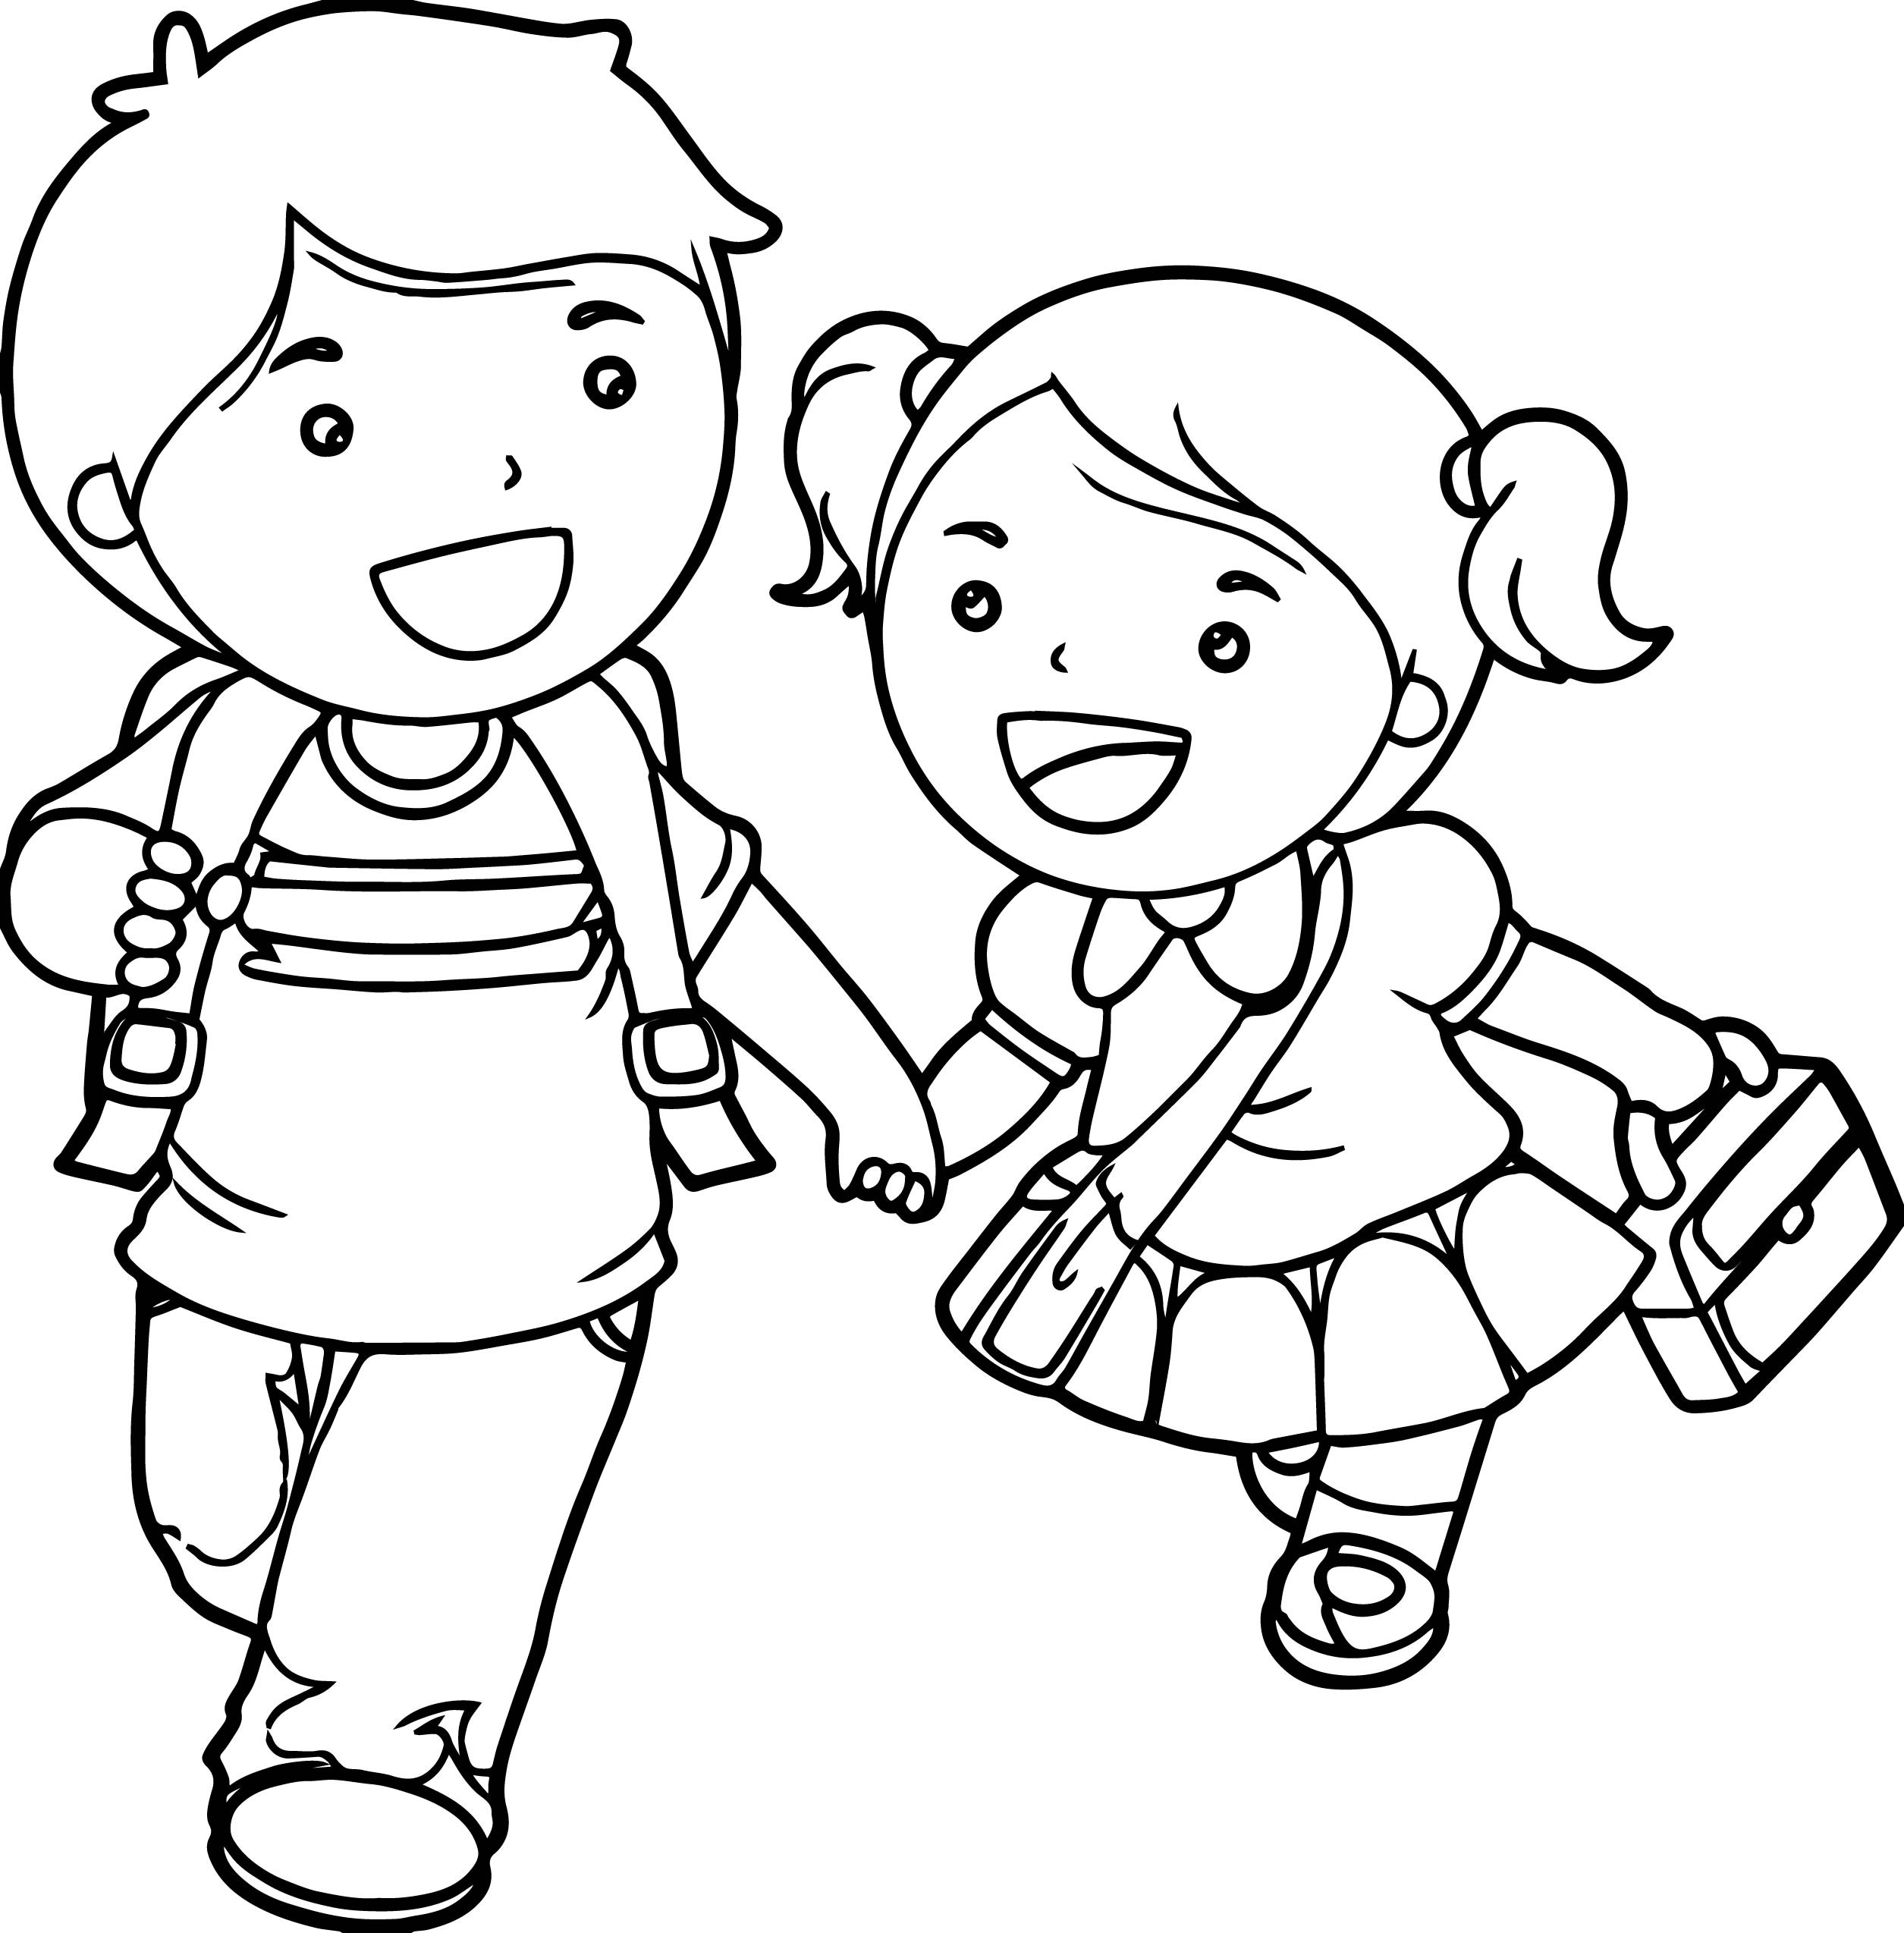 2510x2548 Schoolboy Coloring Page For Kids Lovely Lovely Decoration Reading